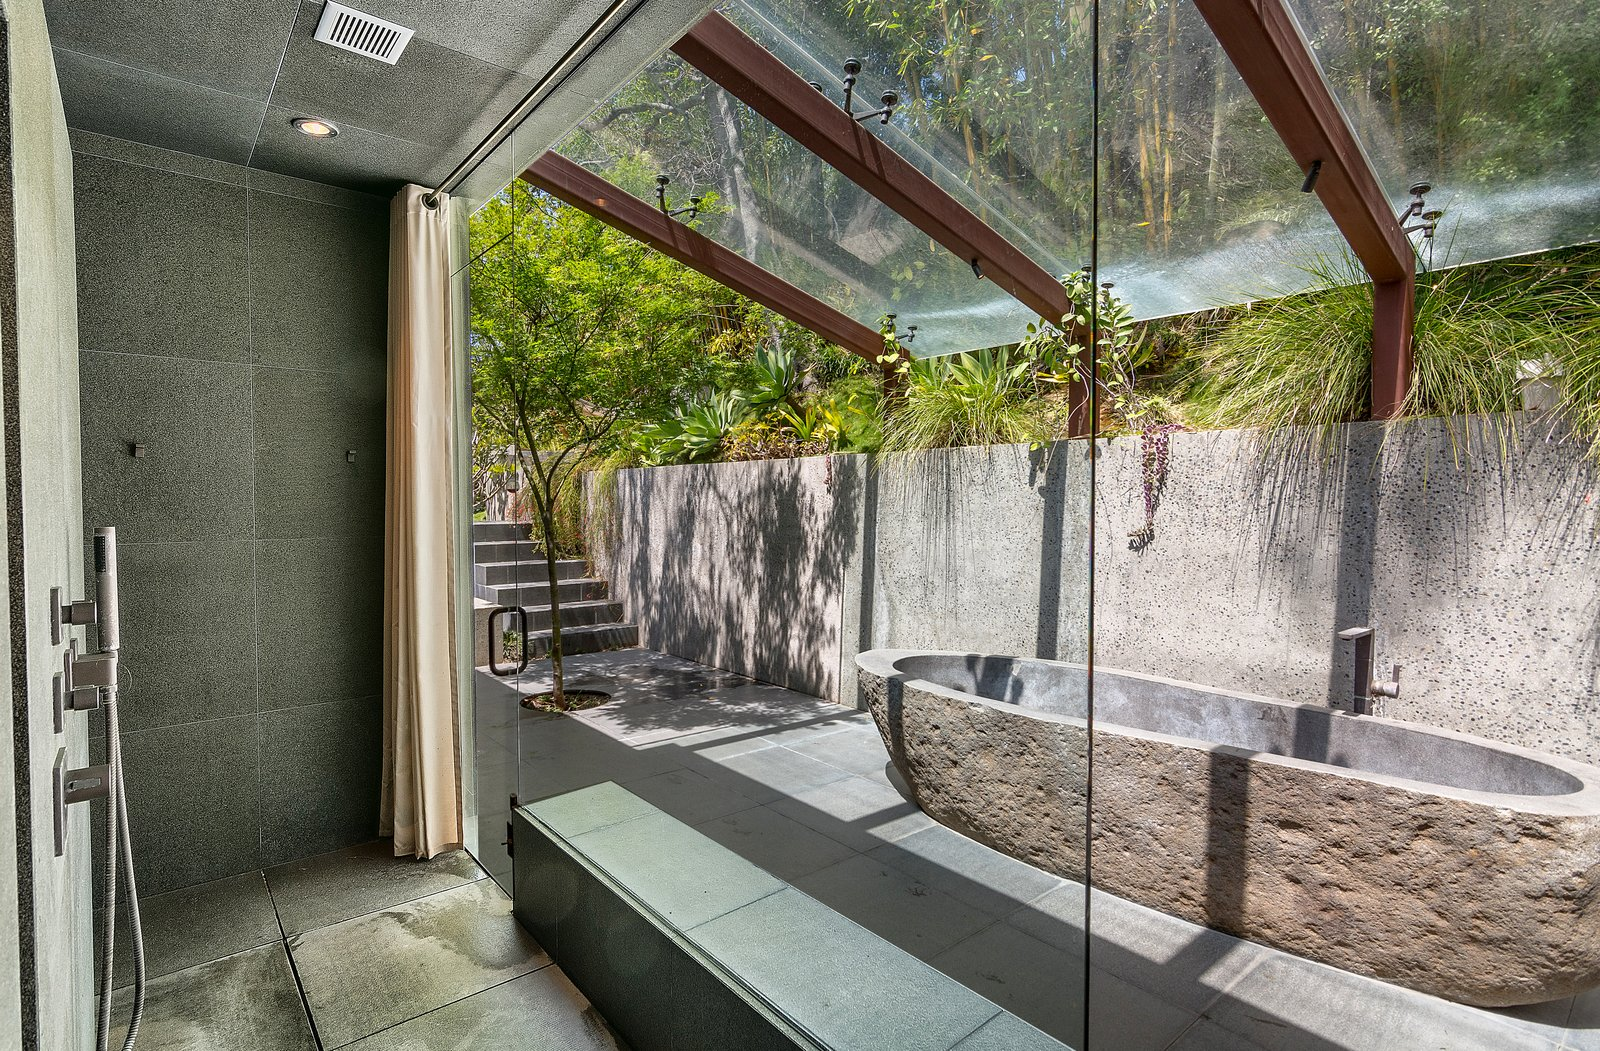 Bath Room, Freestanding Tub, Soaking Tub, Open Shower, and Ceiling Lighting  Photo 9 of 14 in John Legend and Chrissy Teigen's Former Midcentury Home in the Hollywood Hills Is For Sale